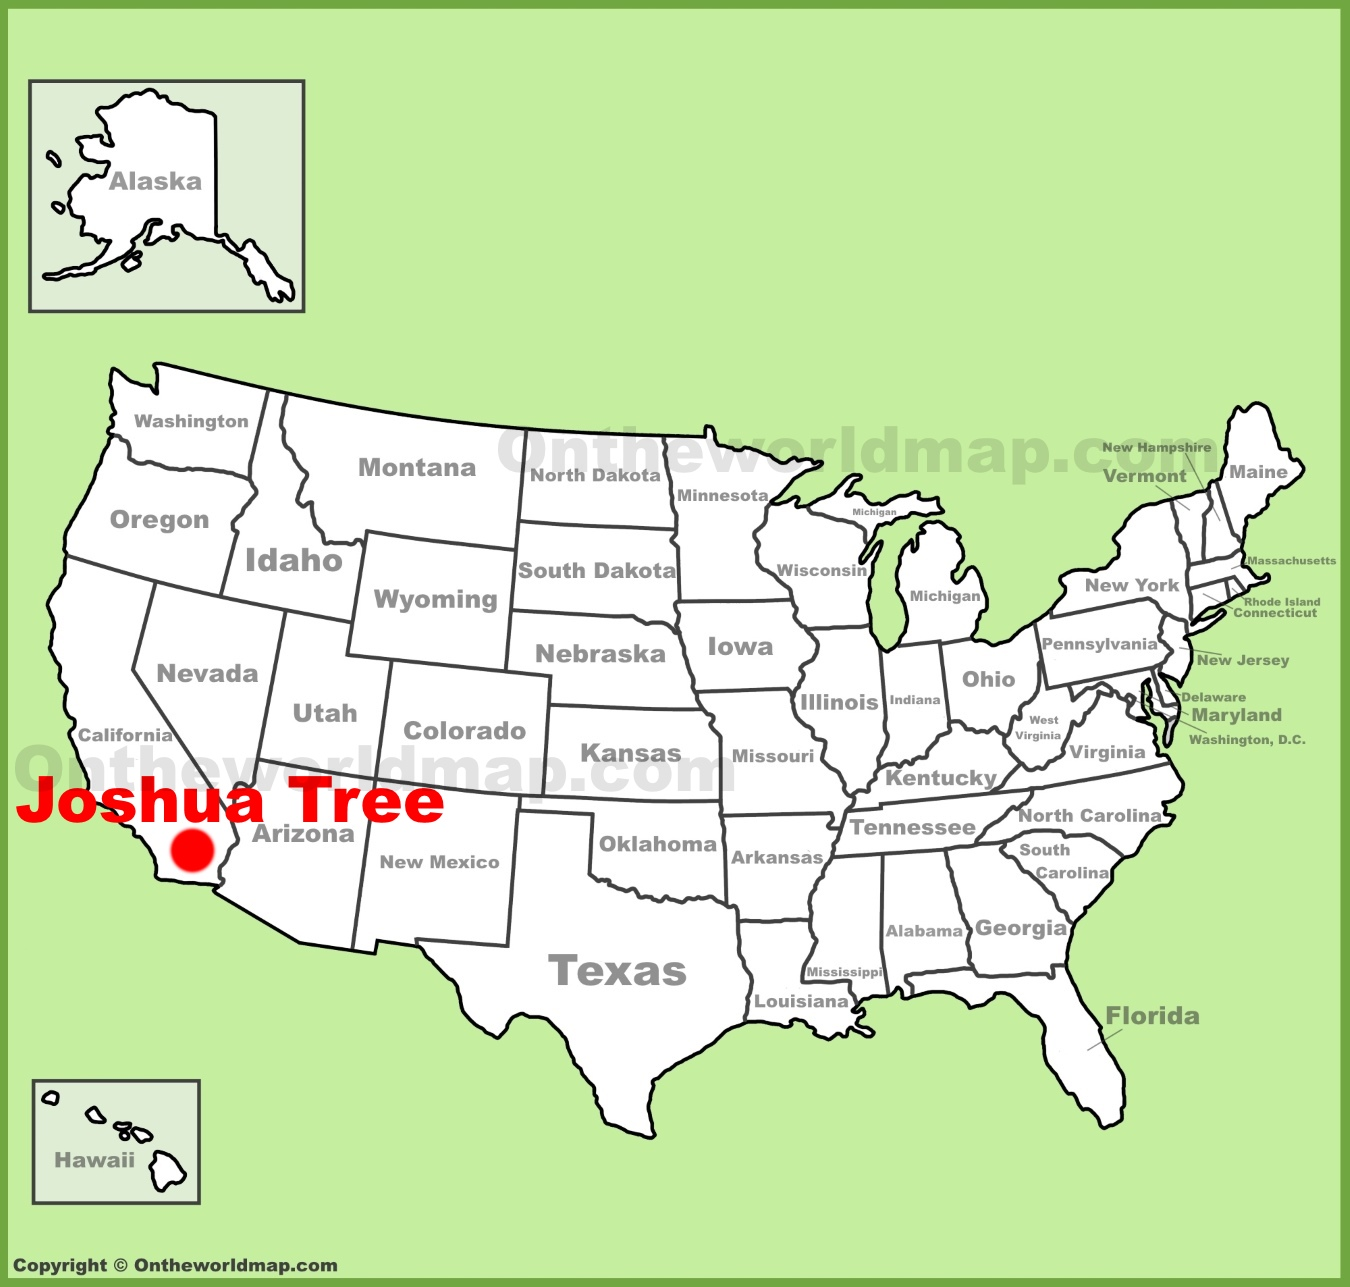 joshua tree location on the u s map